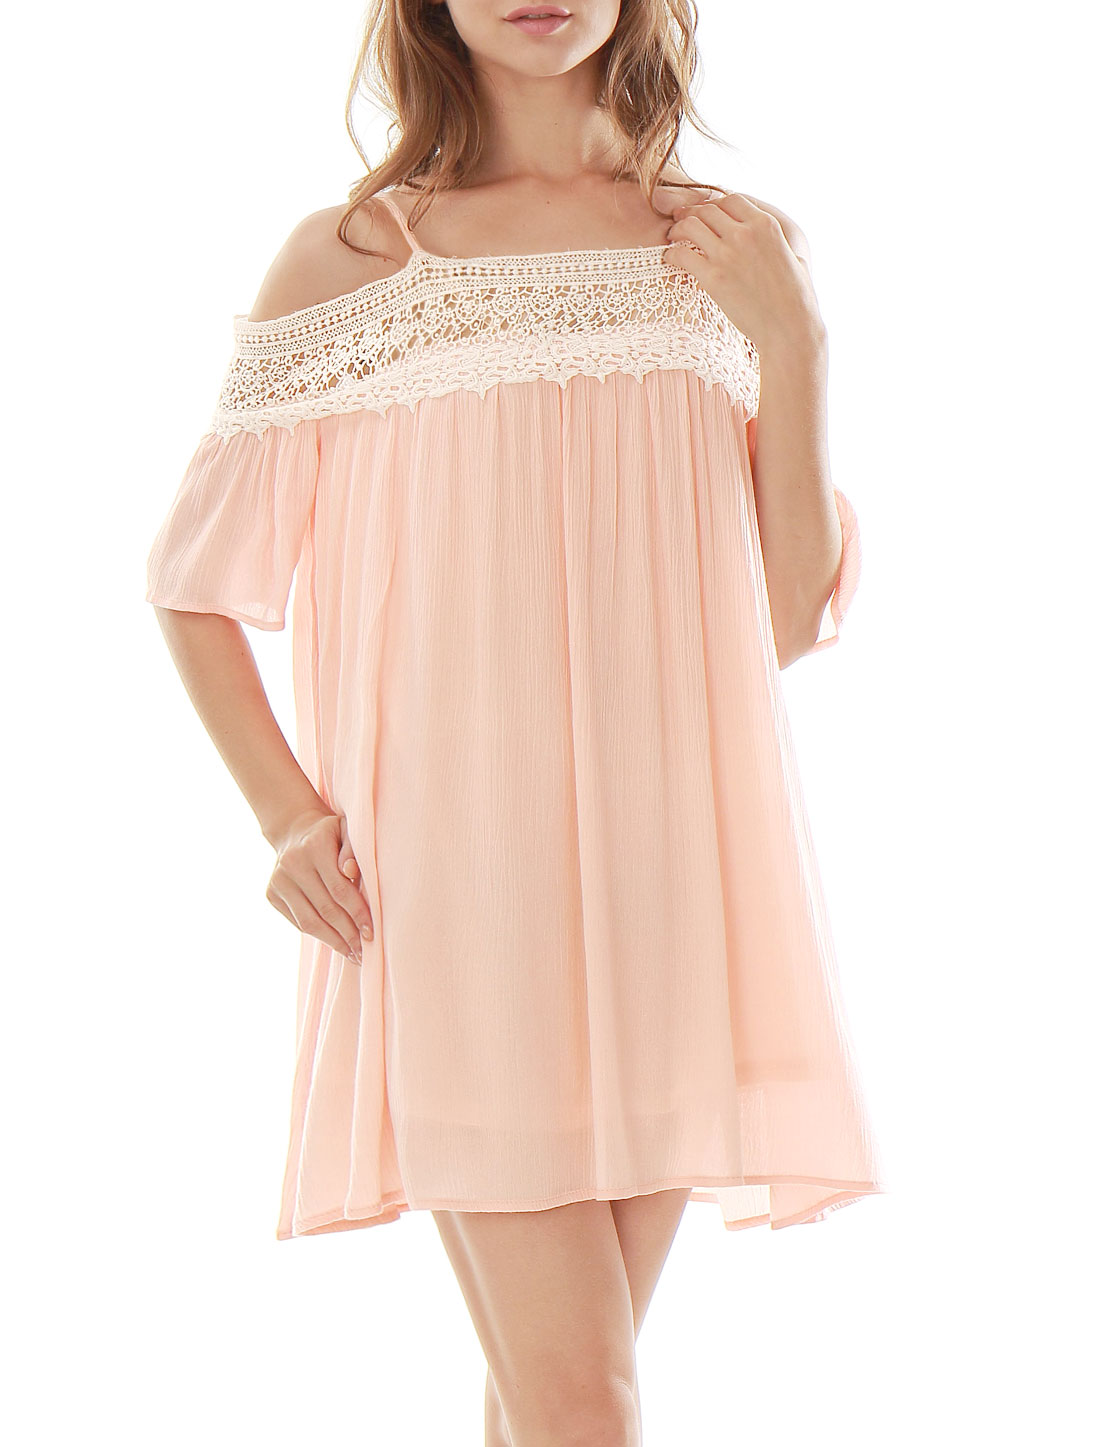 Allegra K Women Crochet Panel Spaghetti Strap Cold Shoulder Dress Pink M